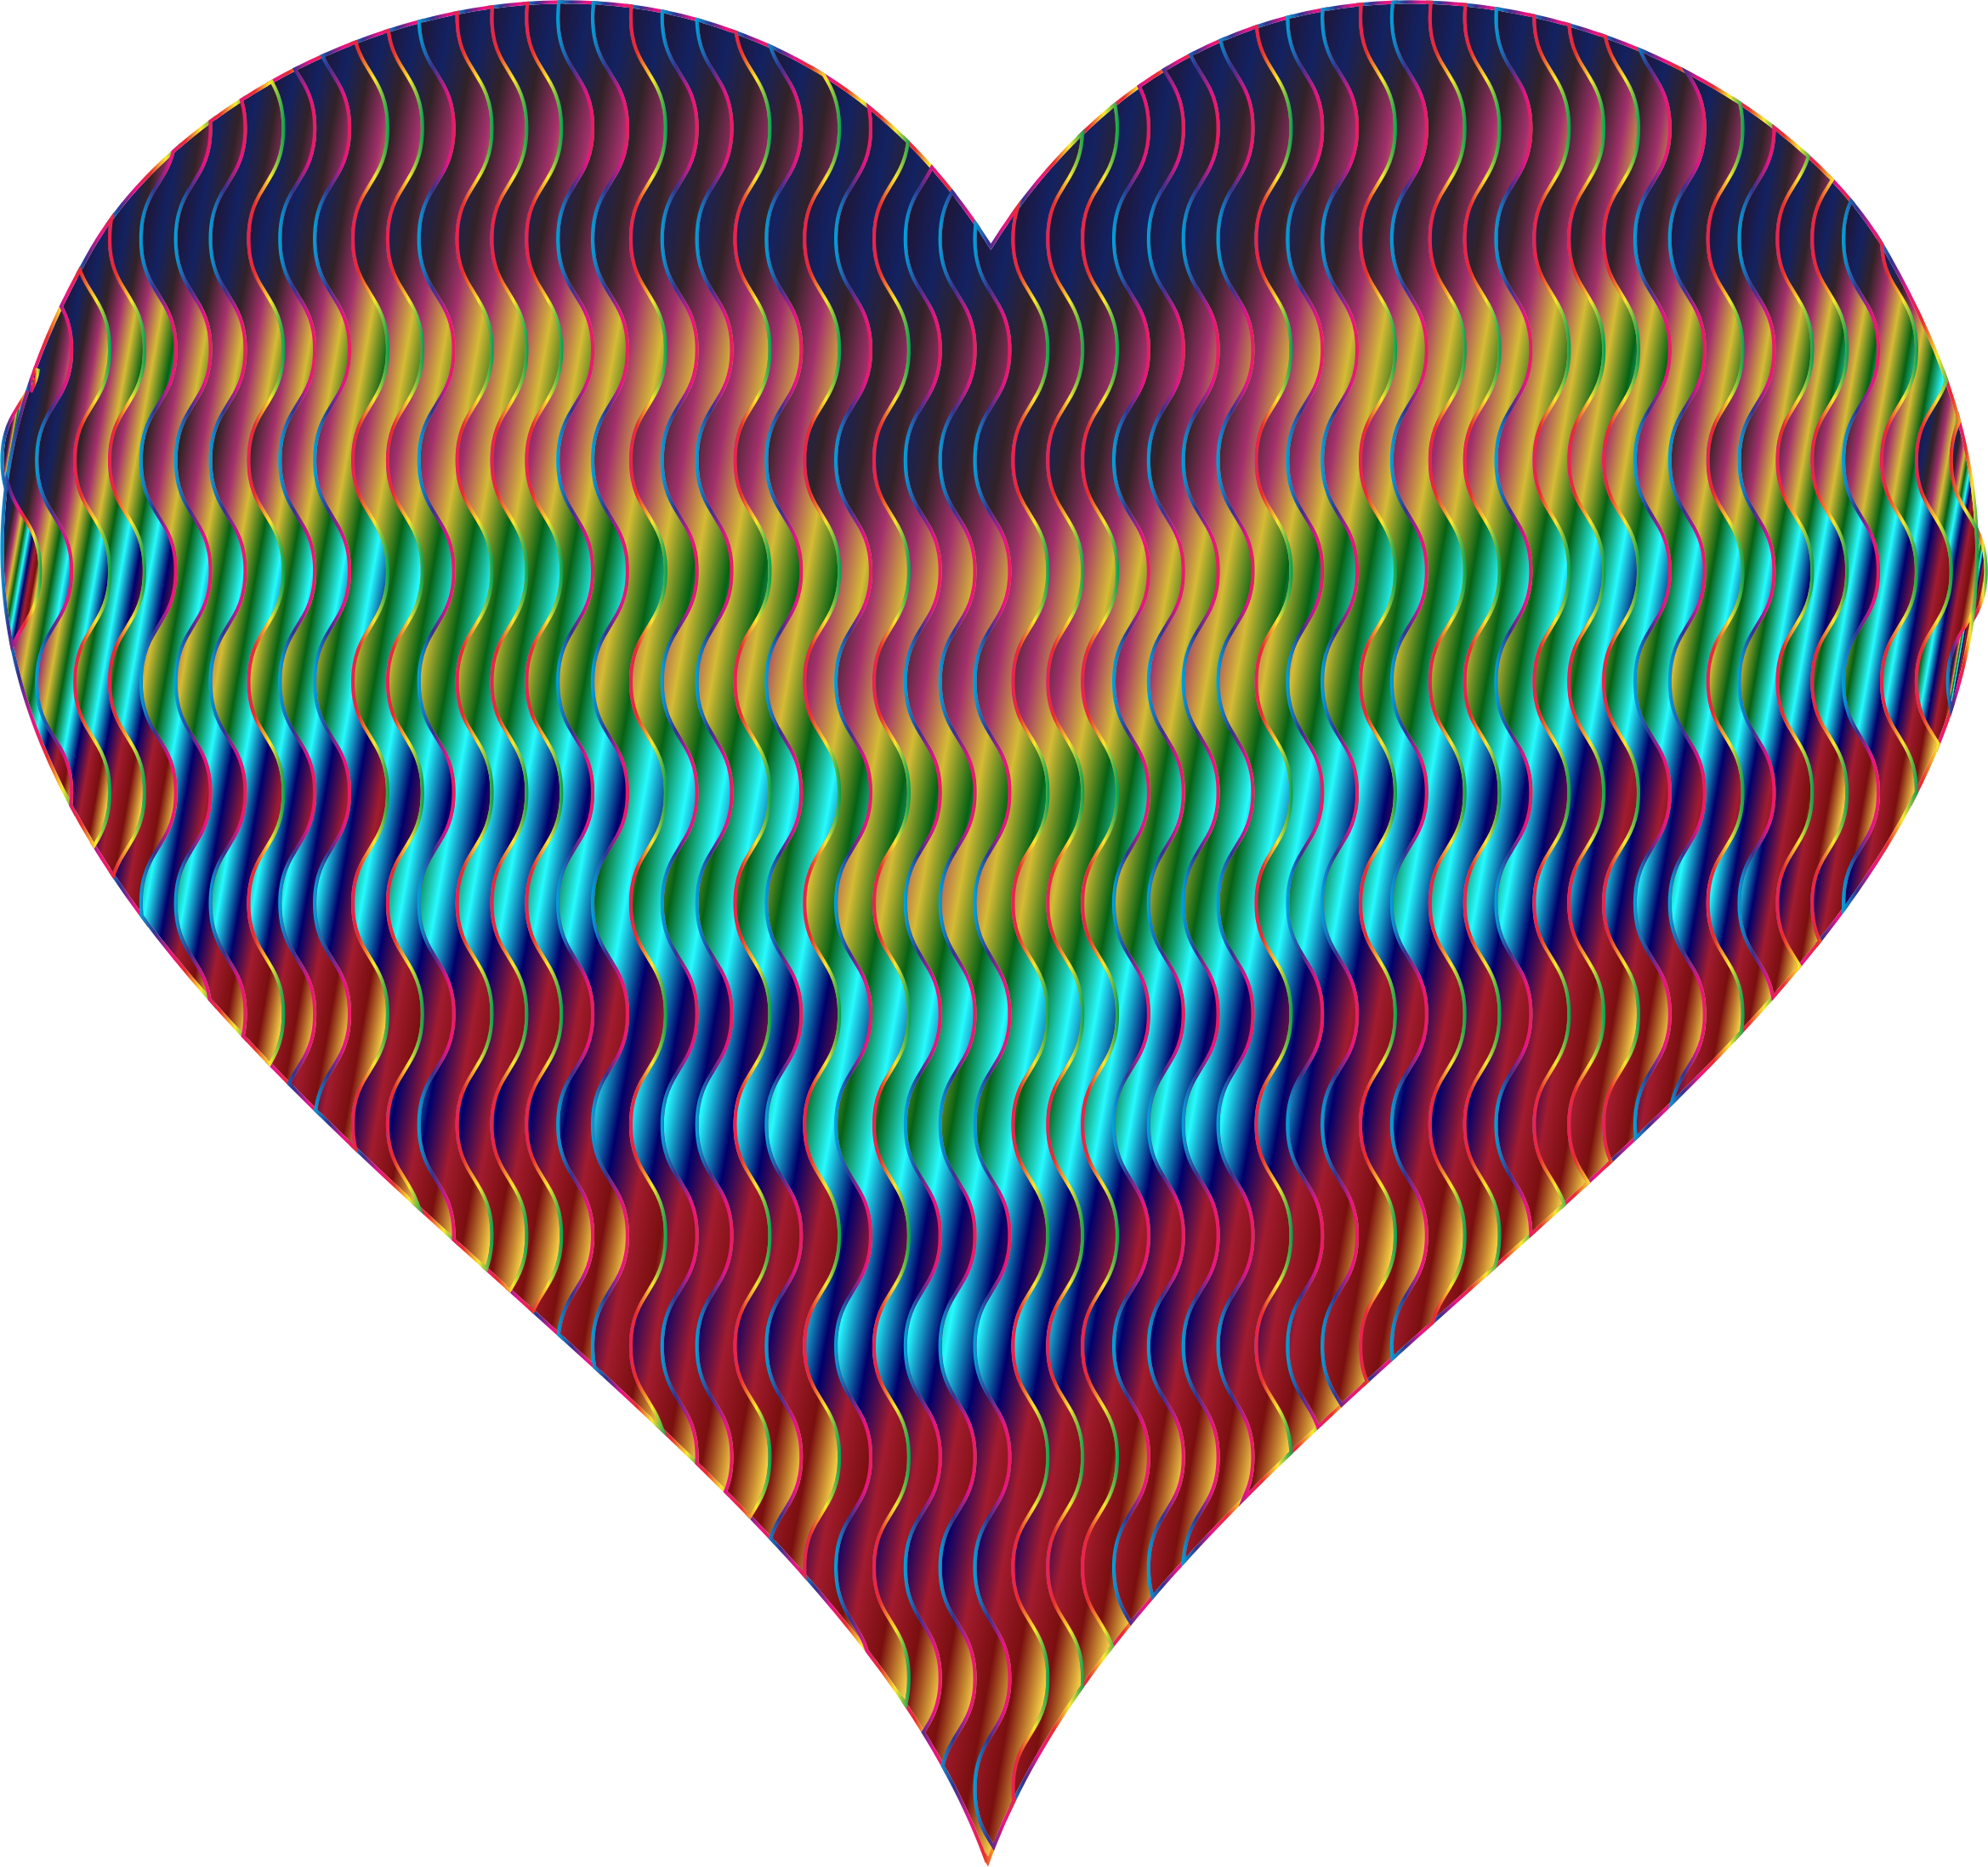 Colorful Wavy Heart 7 by GDJ